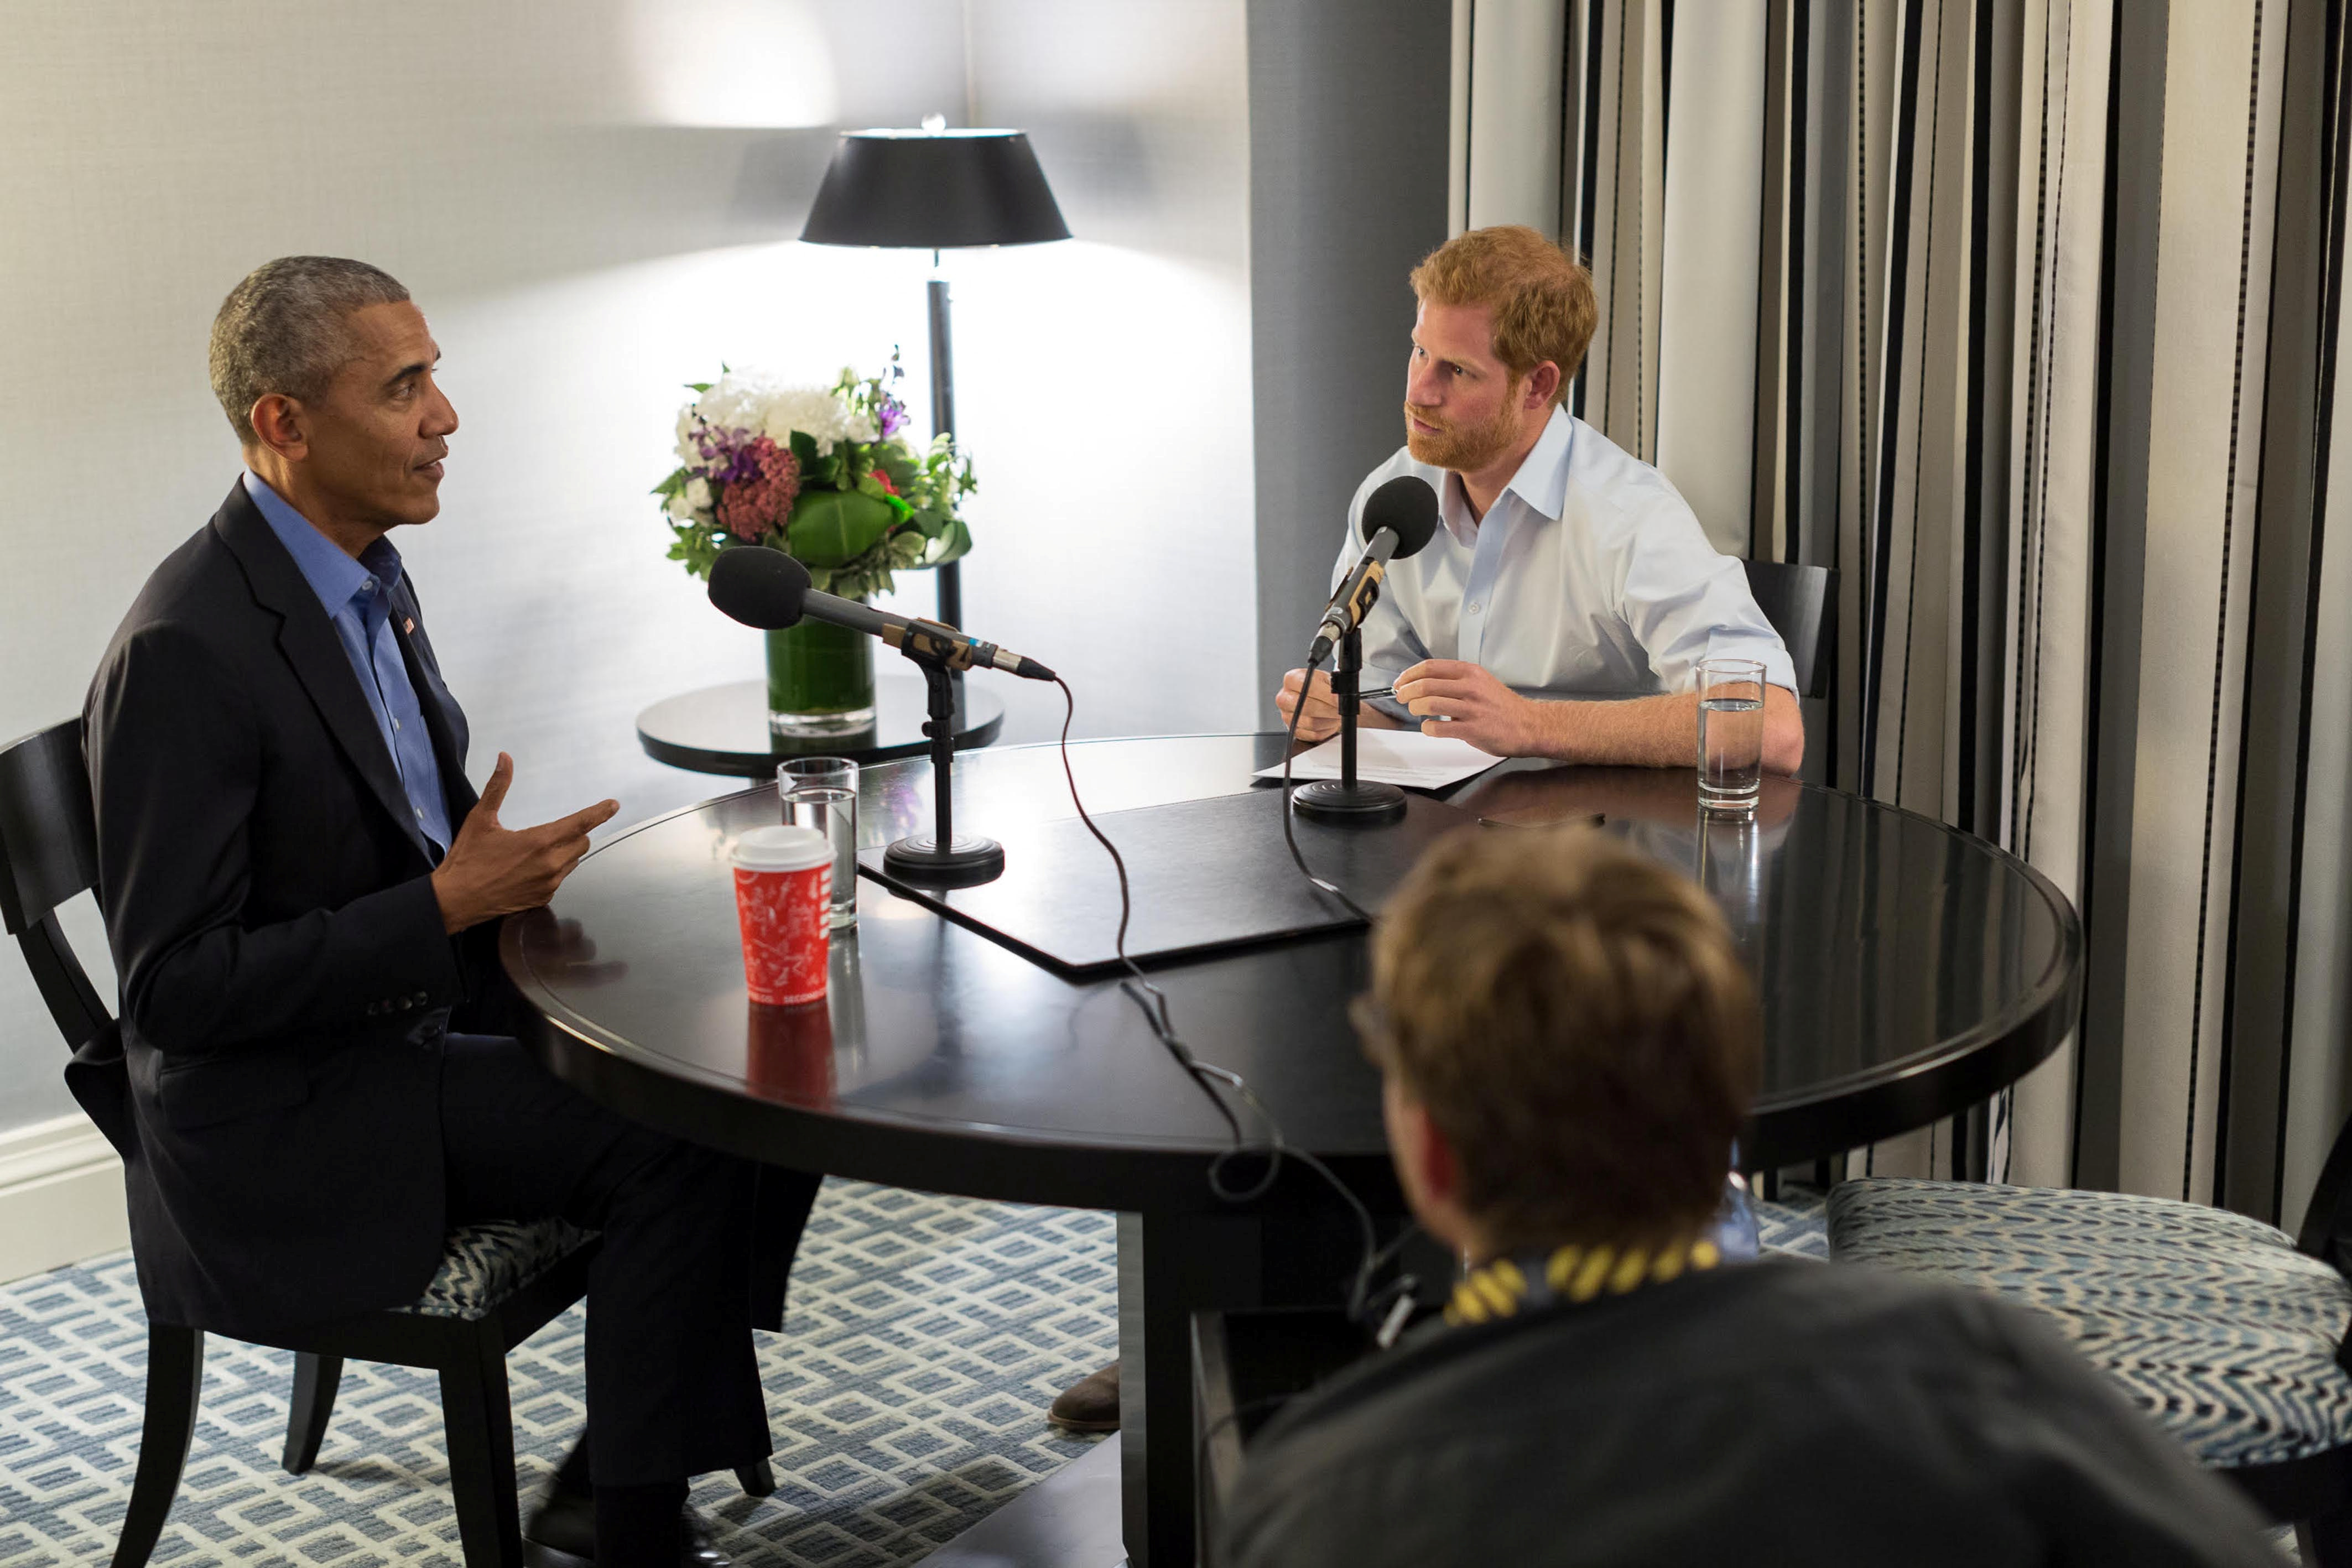 Prince Harry interviews former President Barack Obama on BBC Radio 4's Today program, which was broadcast on Dec. 27, 2017.